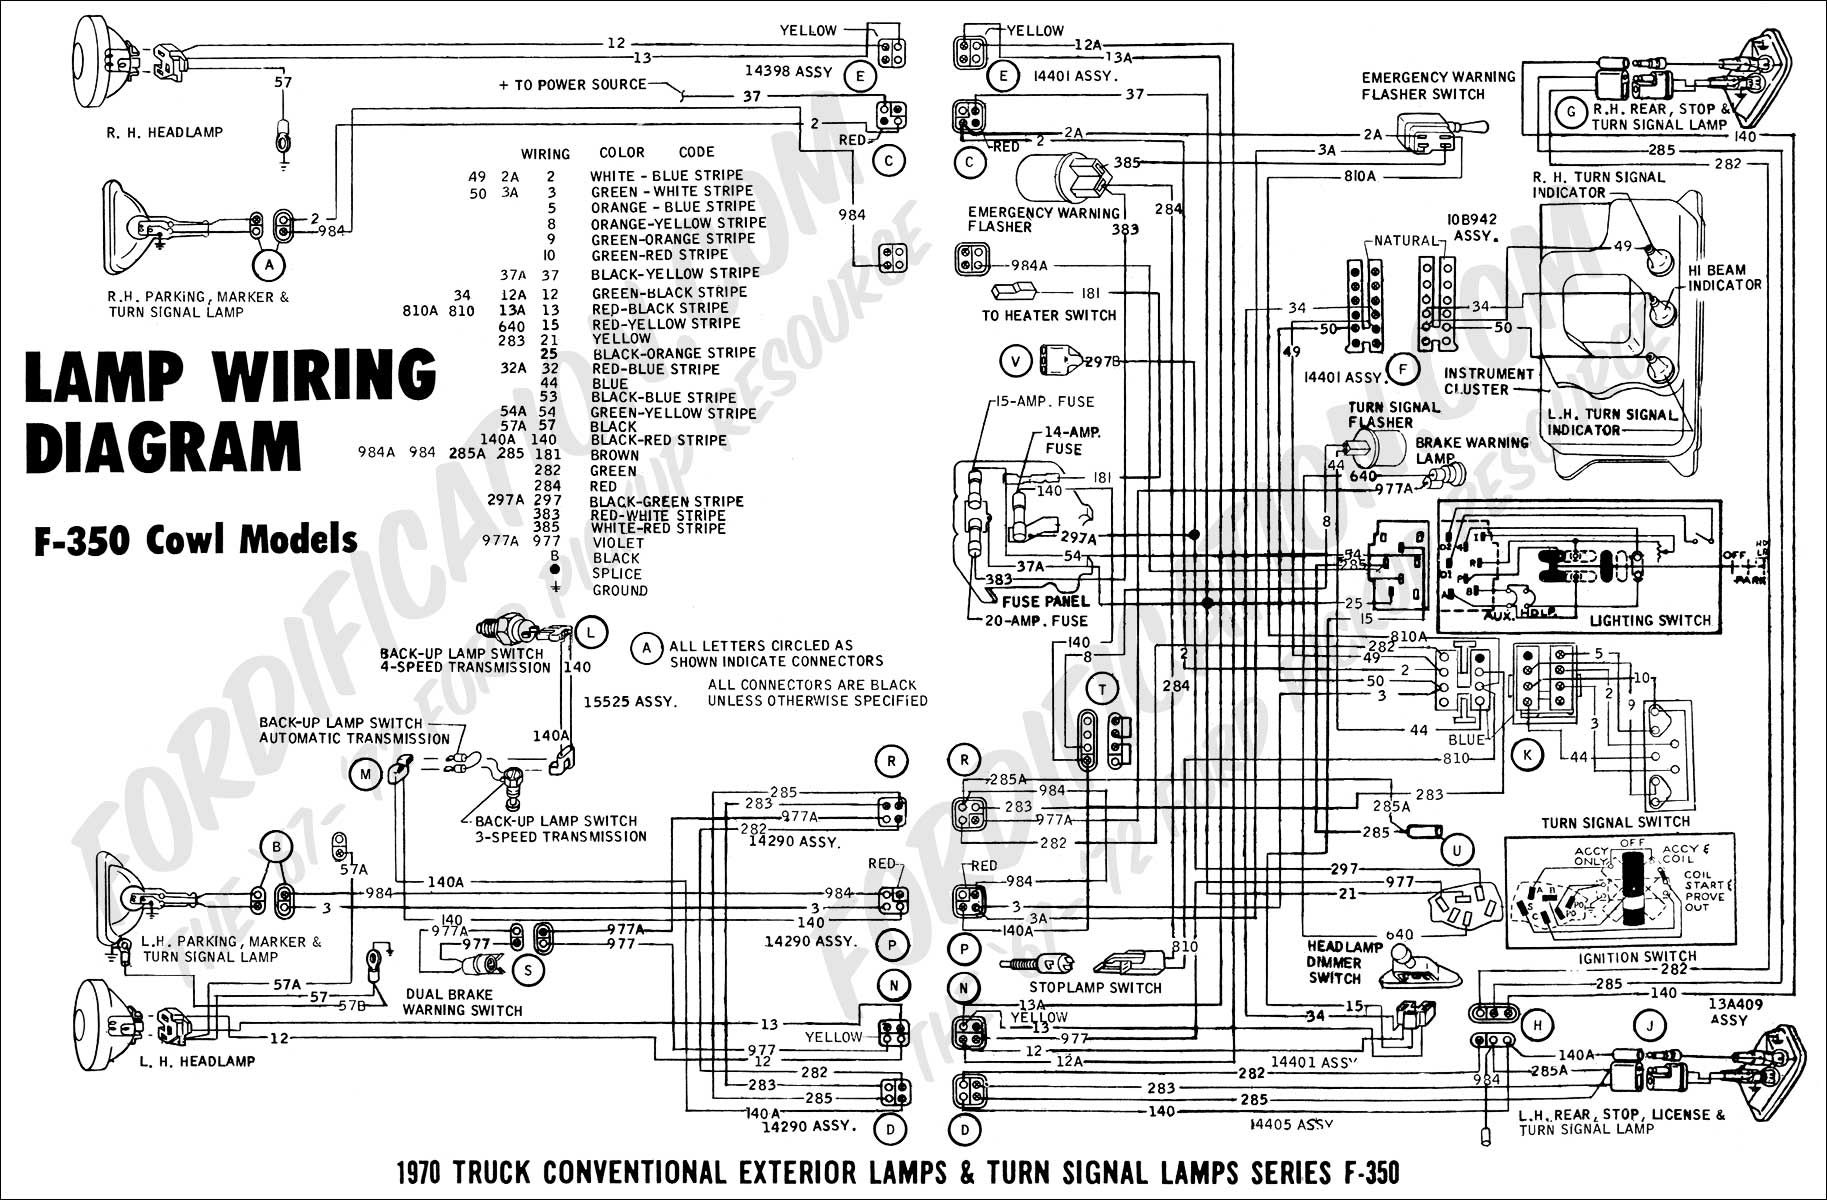 Image Ford Wiring Diagram 91 F350 Wiring Online Wiring Diagram1991 Ford F 350 Wiring Diagram Electrical Diagram Trailer Wiring Diagram Water Heater Thermostat